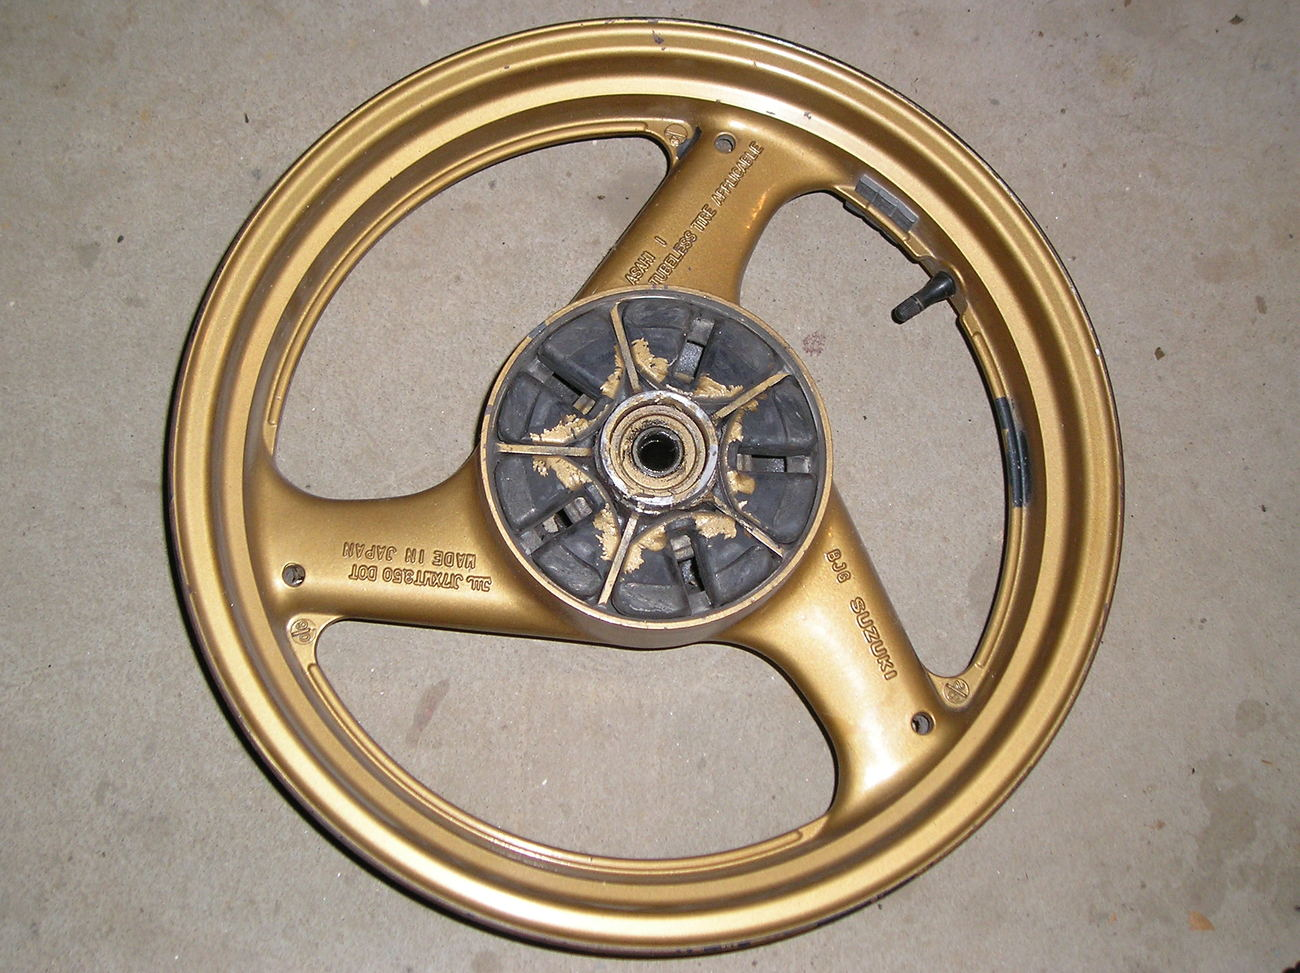 Suzuki Katana gsx600 '88-'96 rear wheel, gold